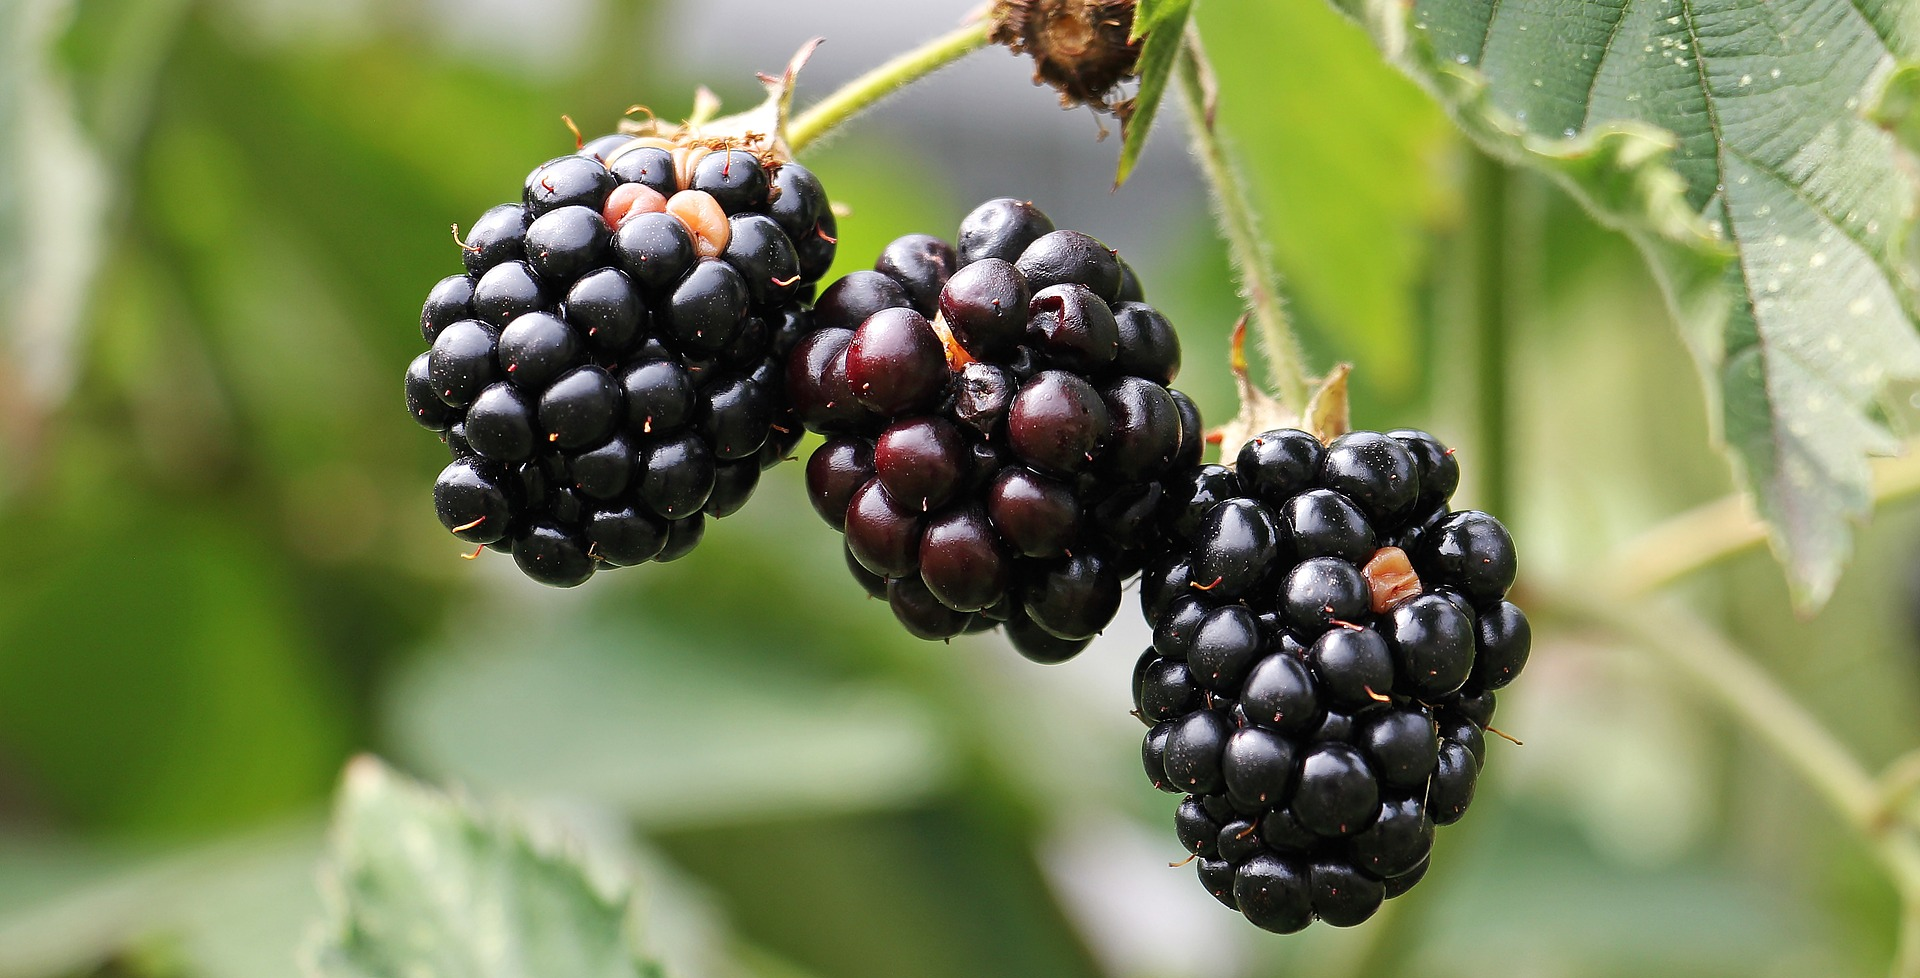 Researcher examines berry polyphenols as potential treatment for cardiovascular treatment